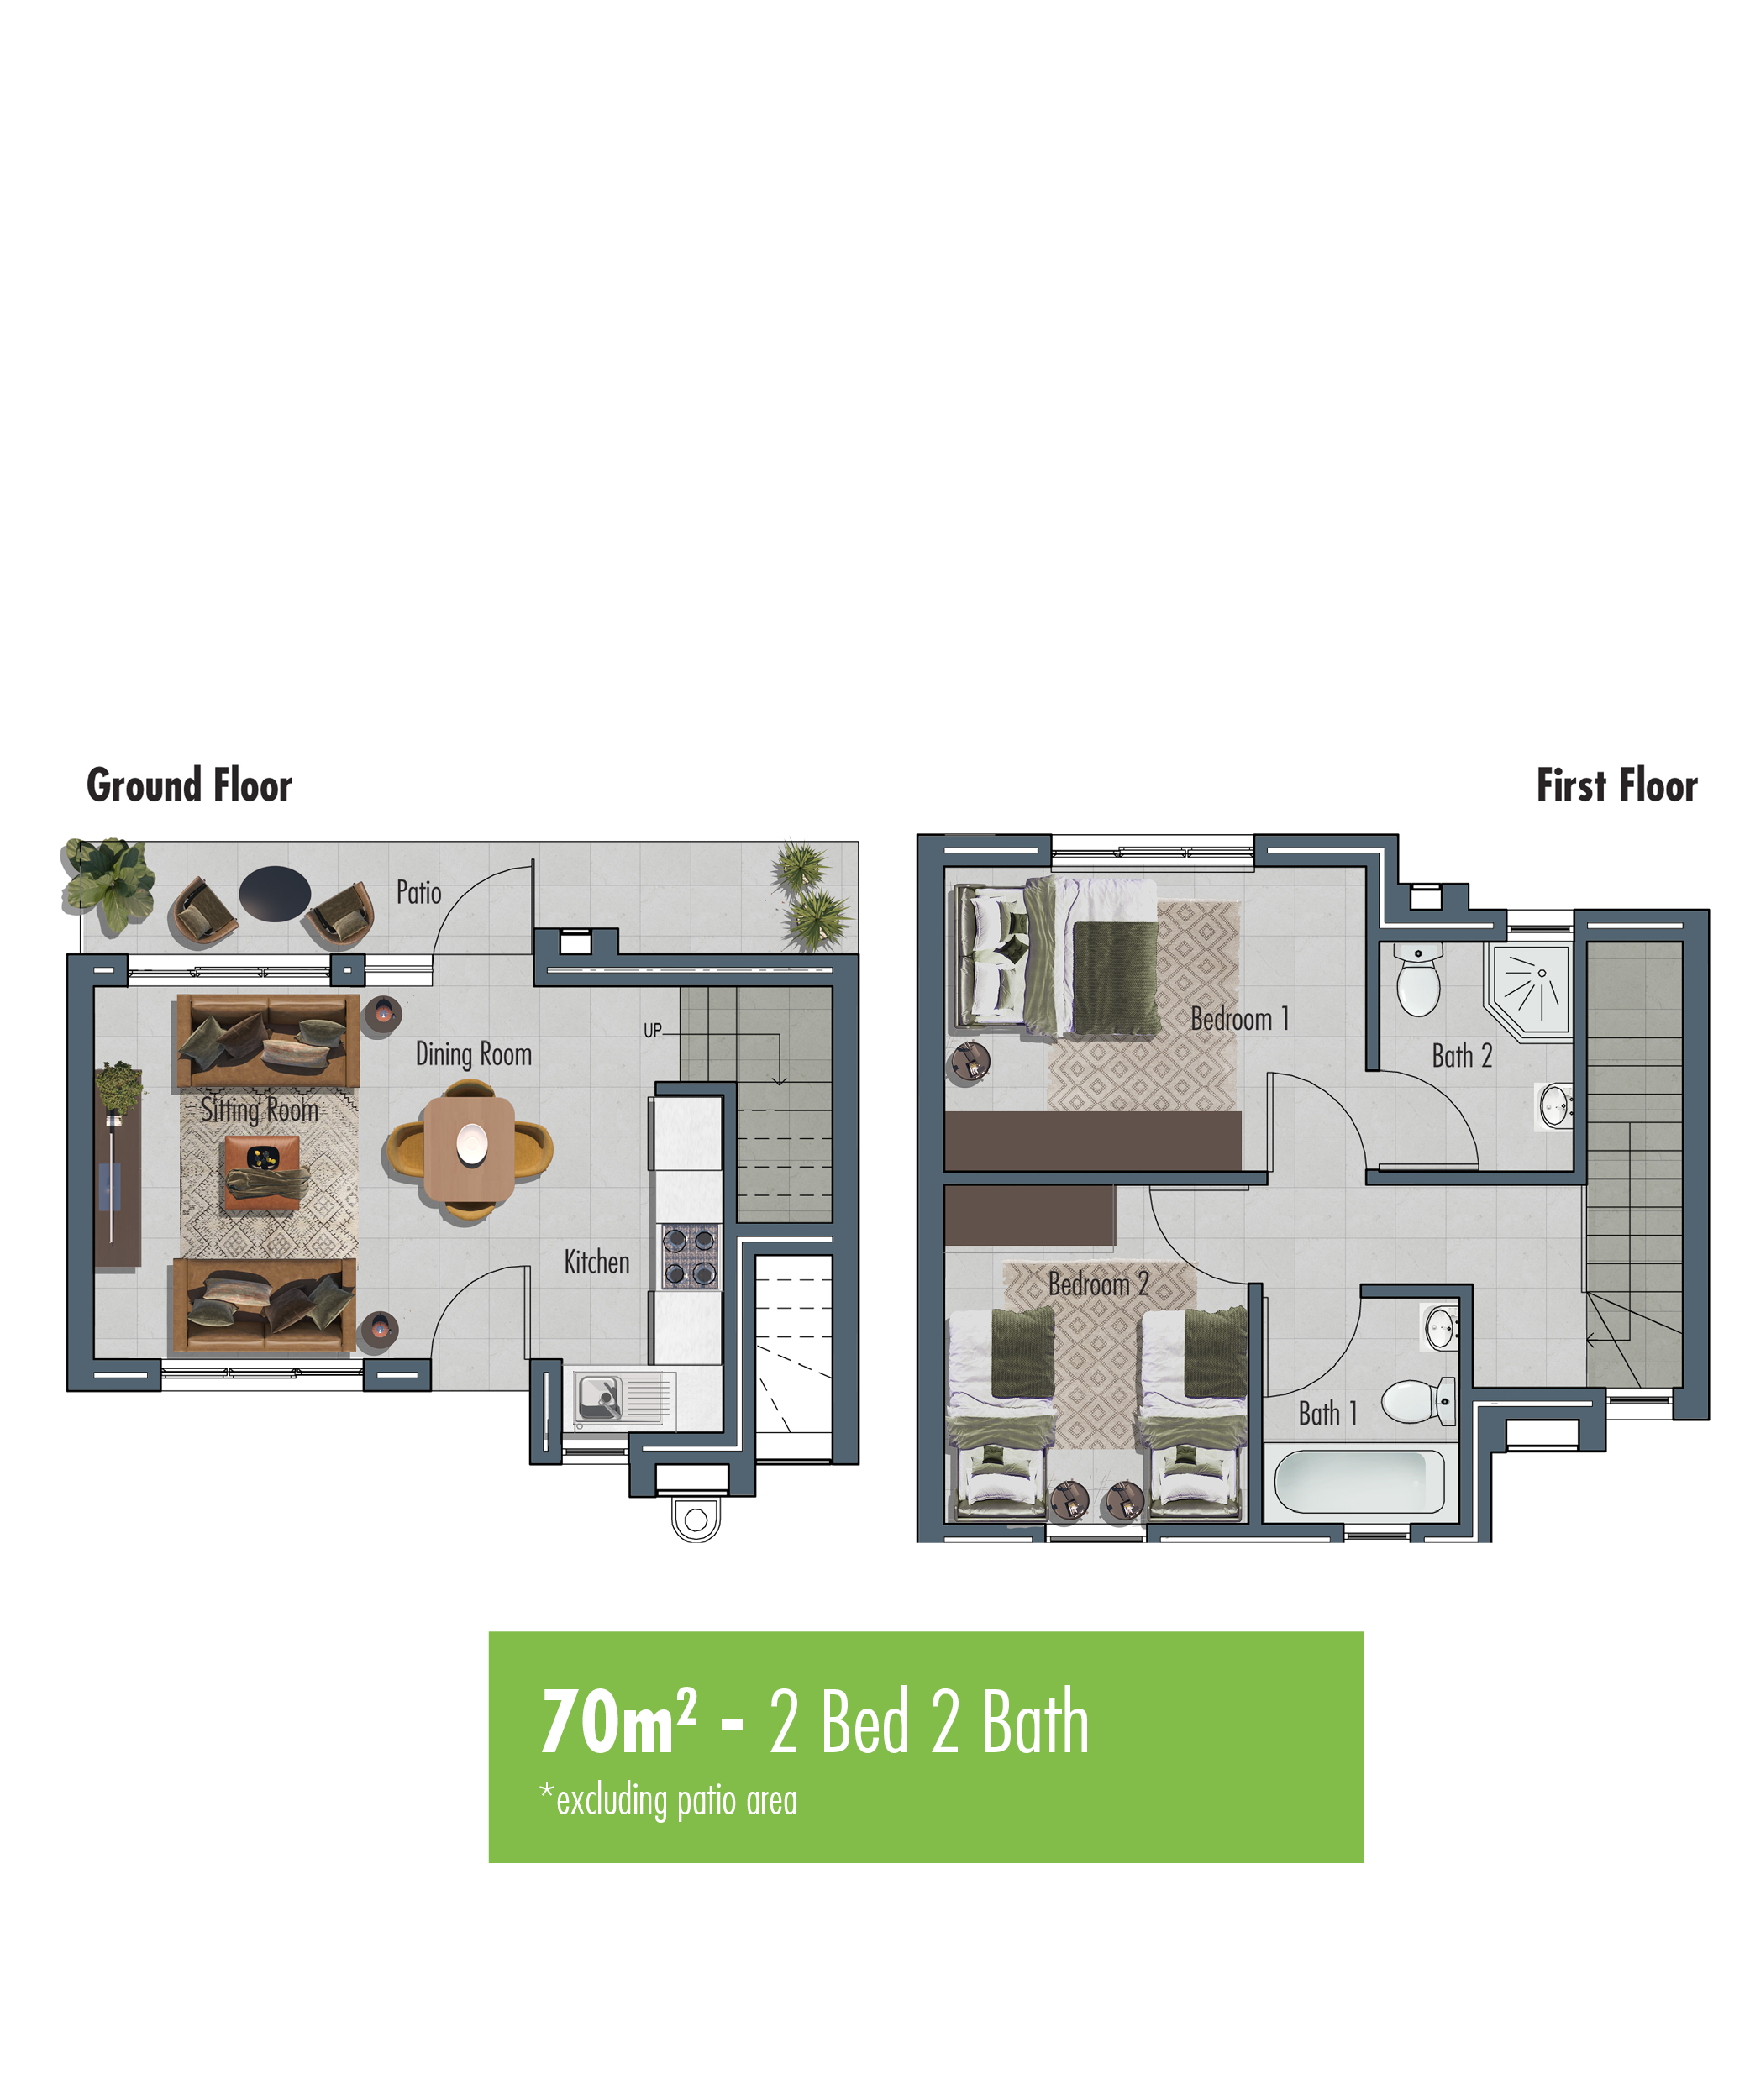 MD588 Floorplans with dollhouses thumbnails7 5